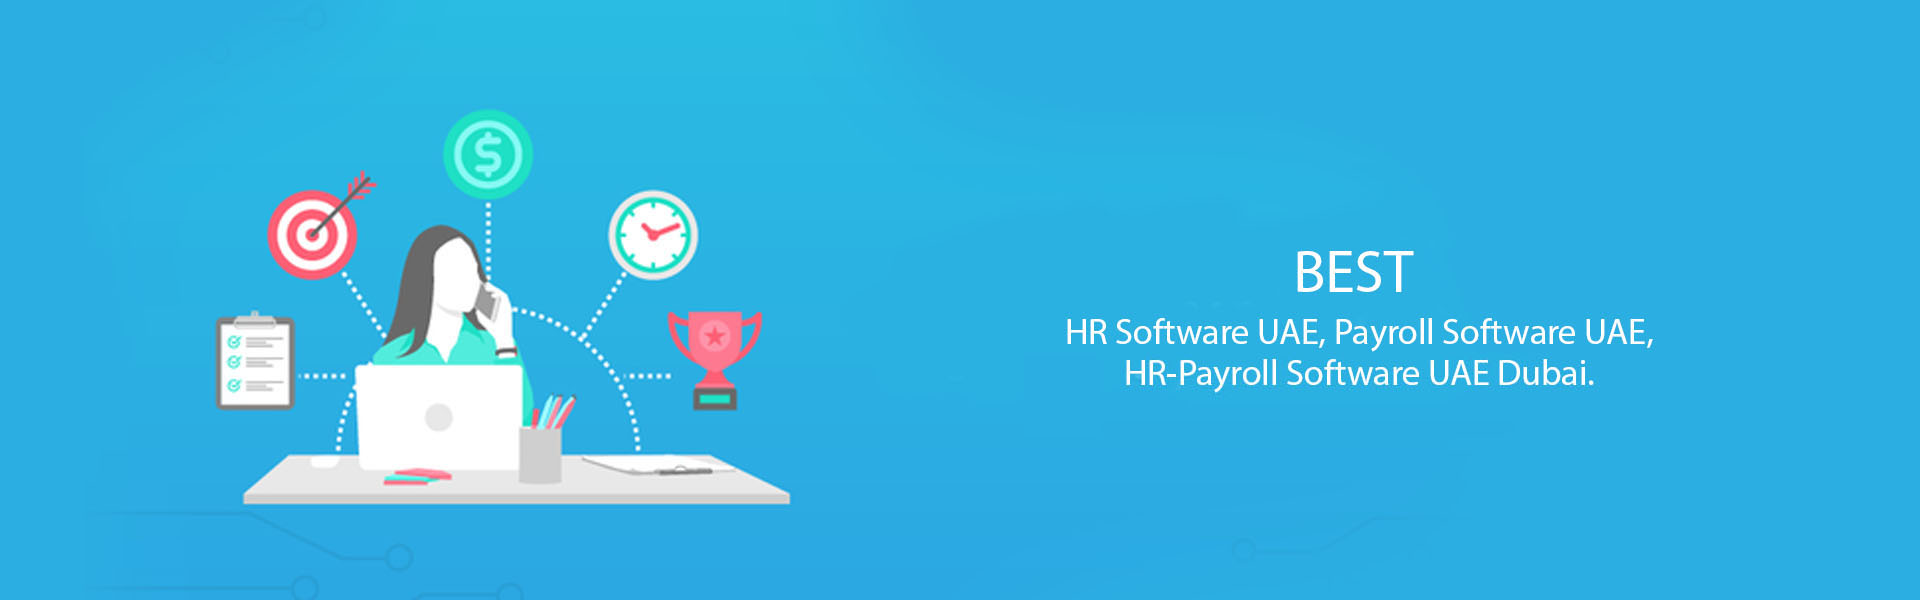 HR Software UAE